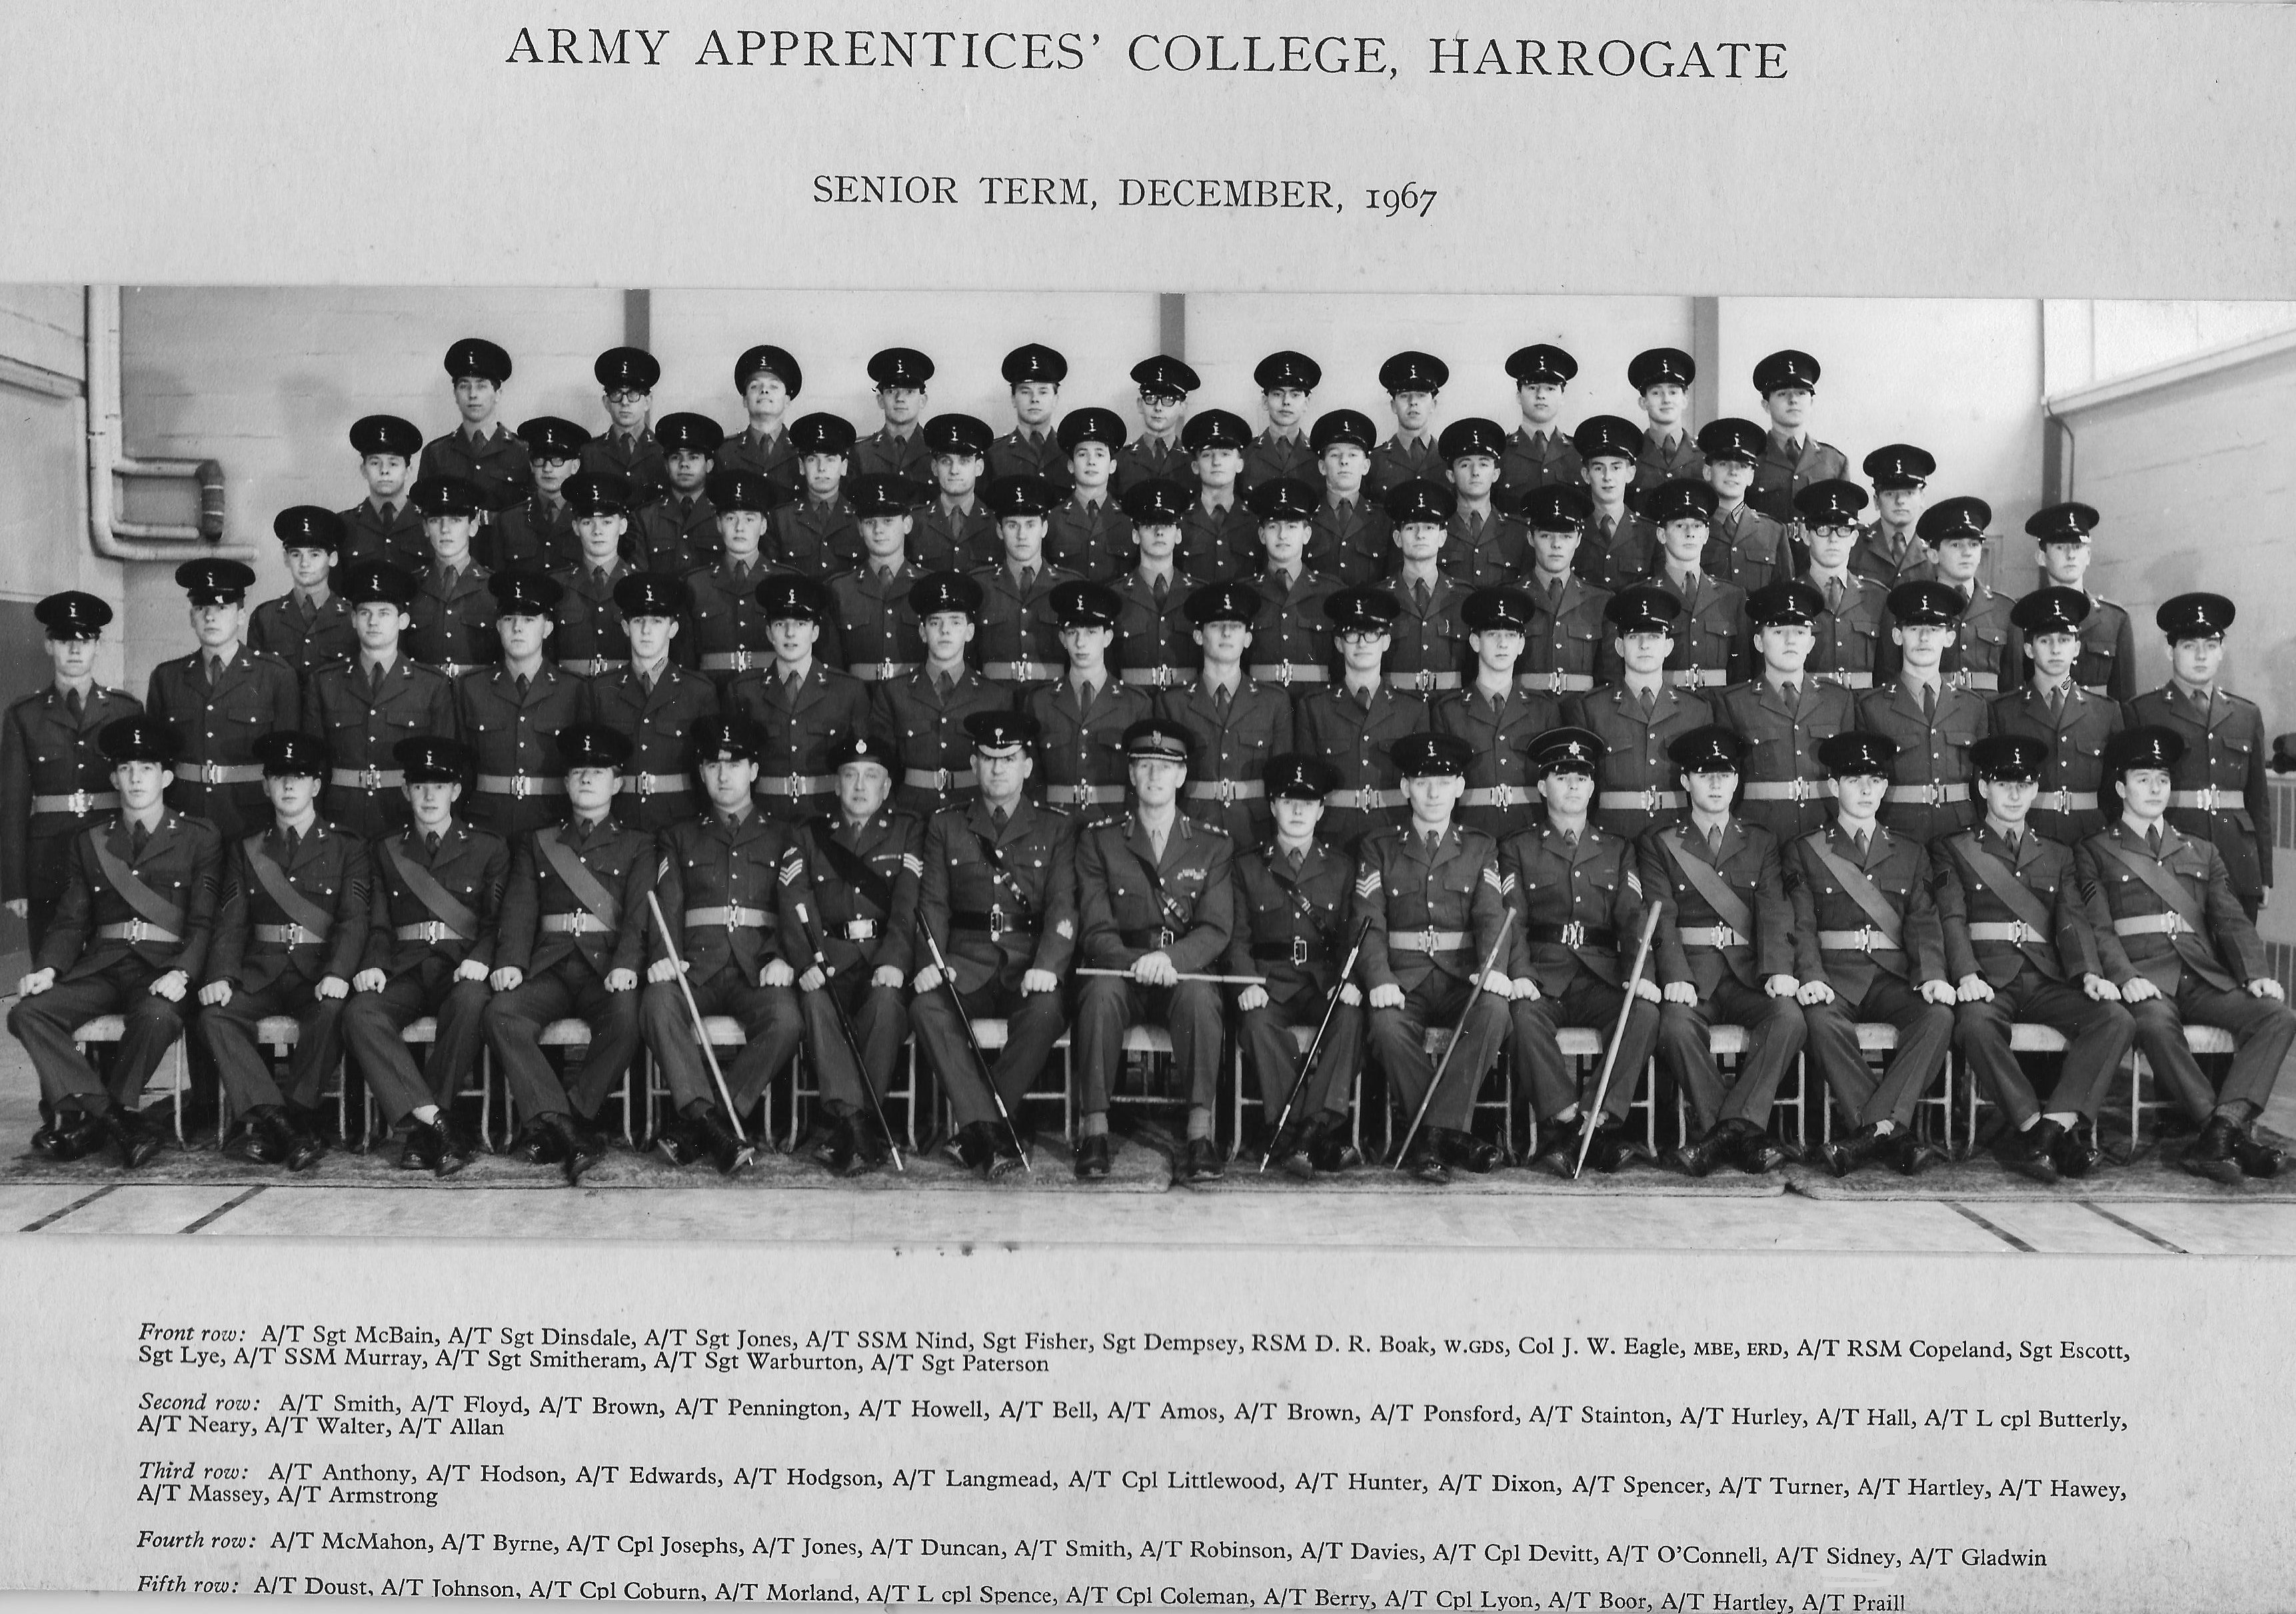 AAC Senior Term Dec 1967